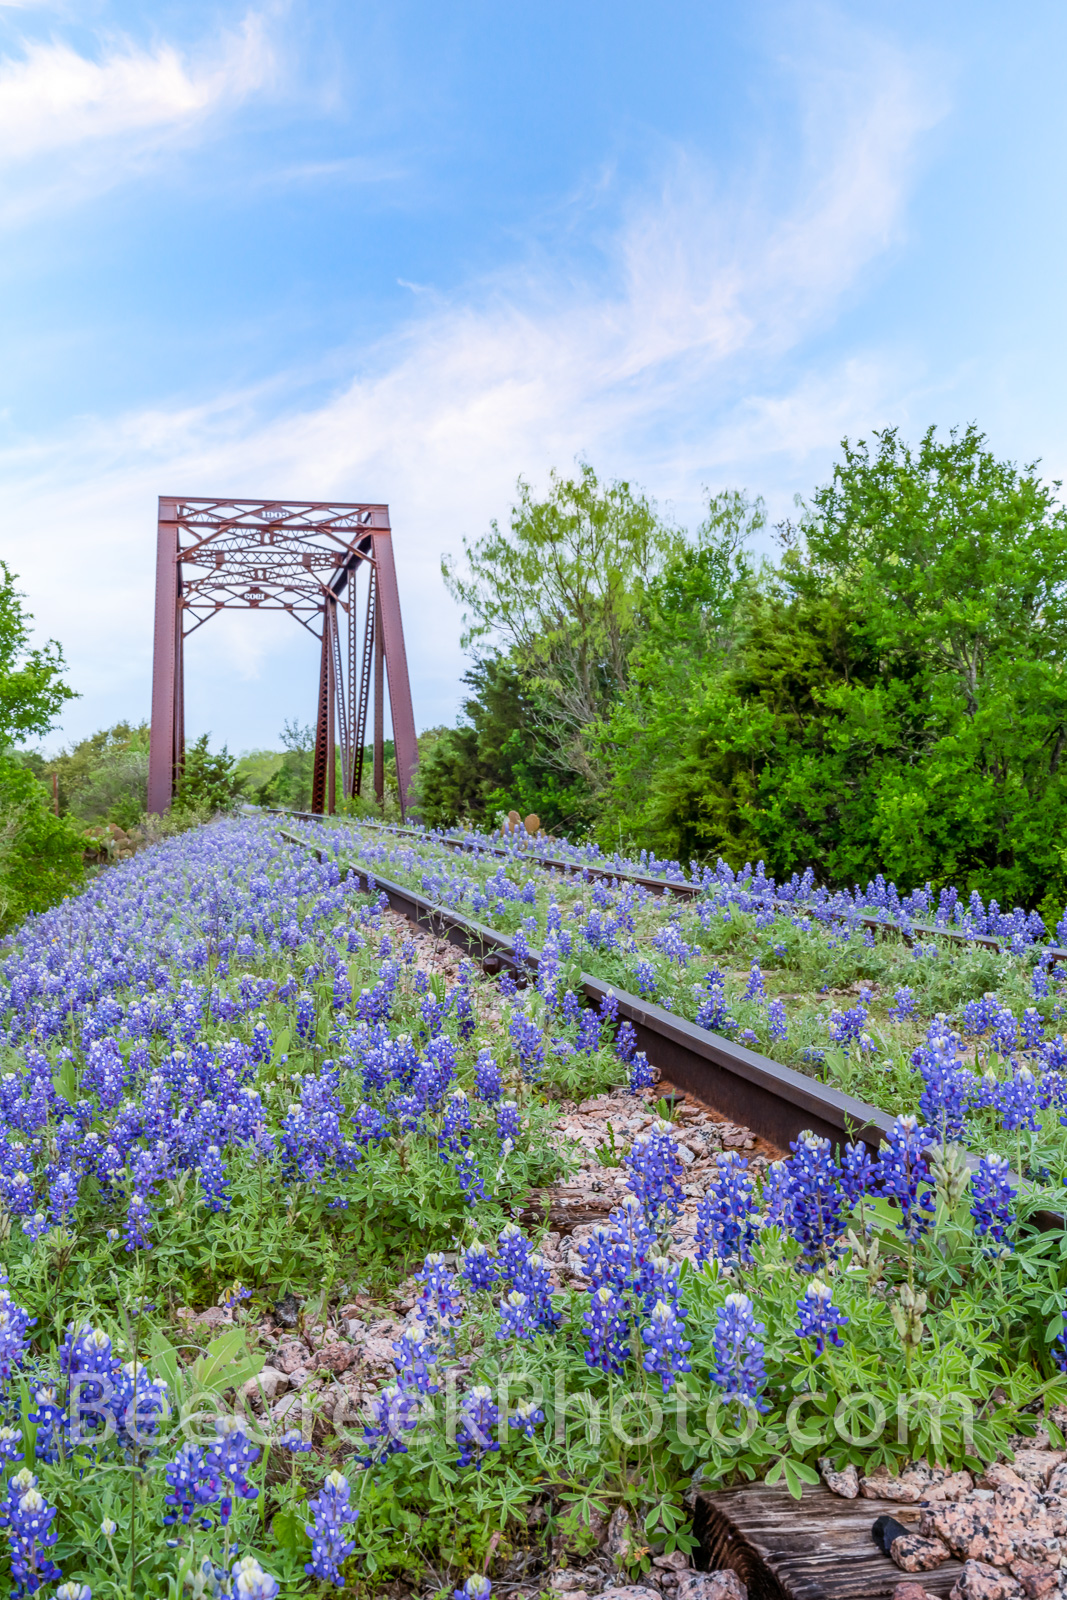 Bluebonnets Landscape on the Tracks Vertical - We capture this wonderful blue sky over the bluebonnets at the rail road track...